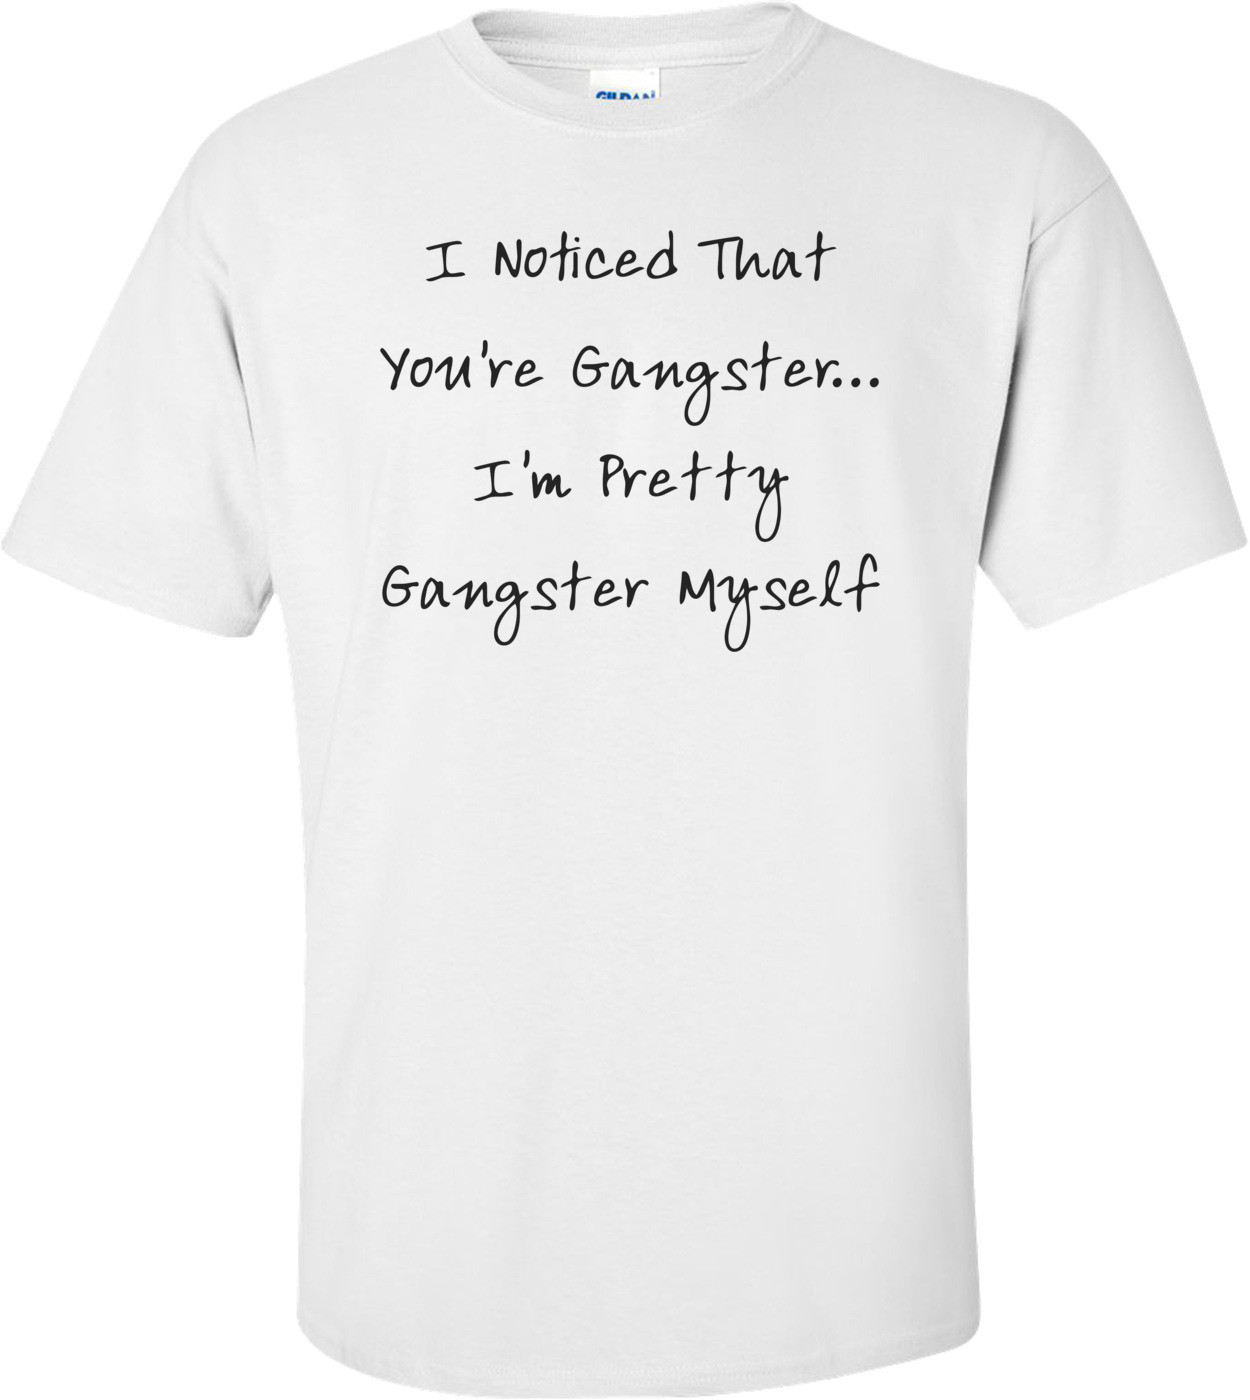 I Noticed That You're Gangster... I'm Pretty Gangster Myself T-Shirt